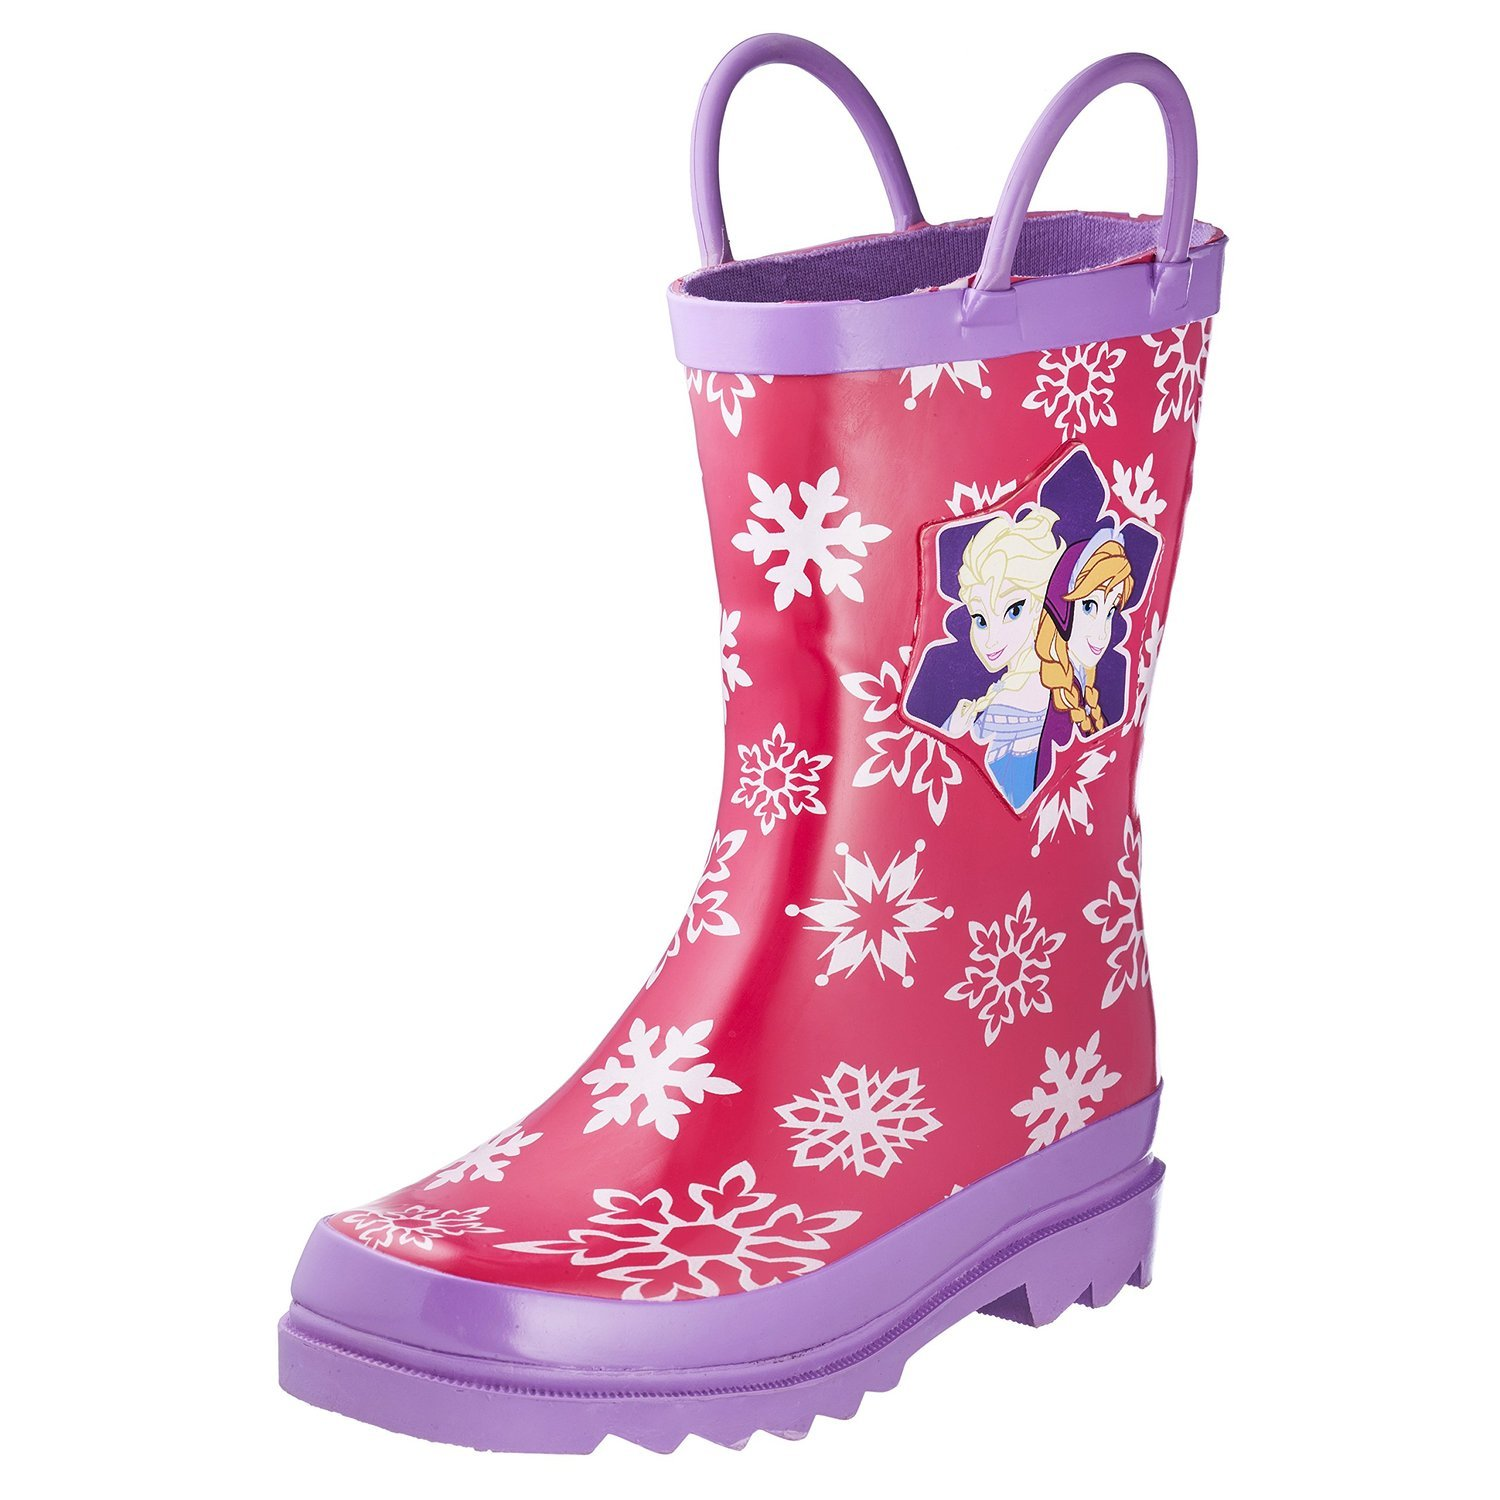 Disney Frozen Girls Anna and Elsa Pink Rain Boots - Different Sizes FZR00910AOO